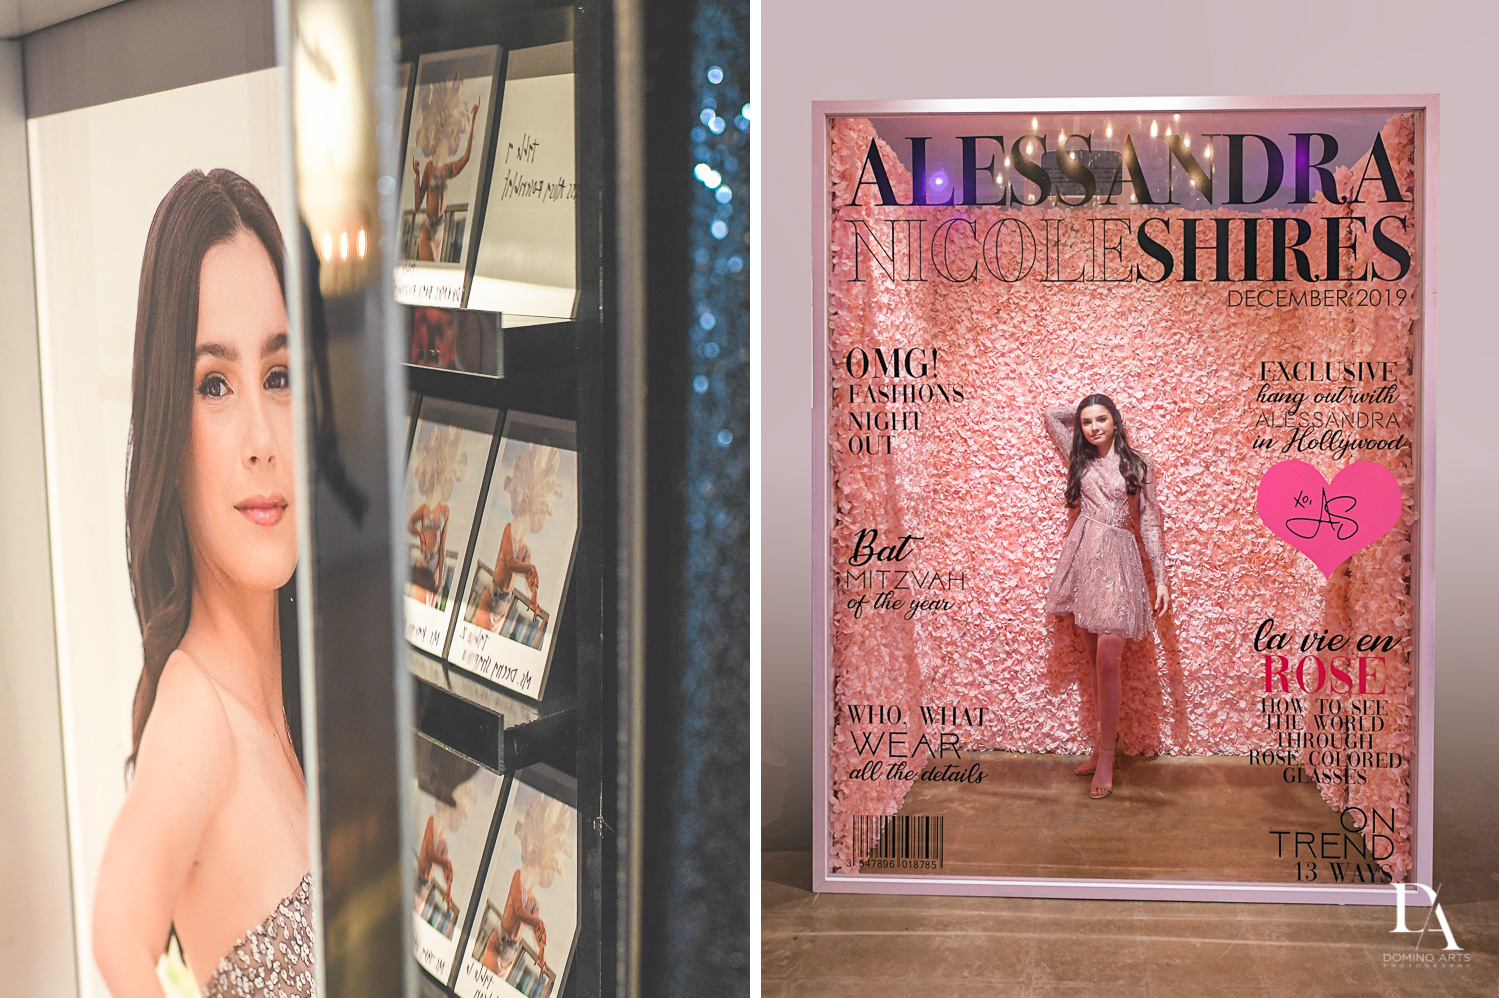 Vogue cover photo backdrop at Fashion Theme Bat Mitzvah at Gallery of Amazing Things by Domino Arts Photography